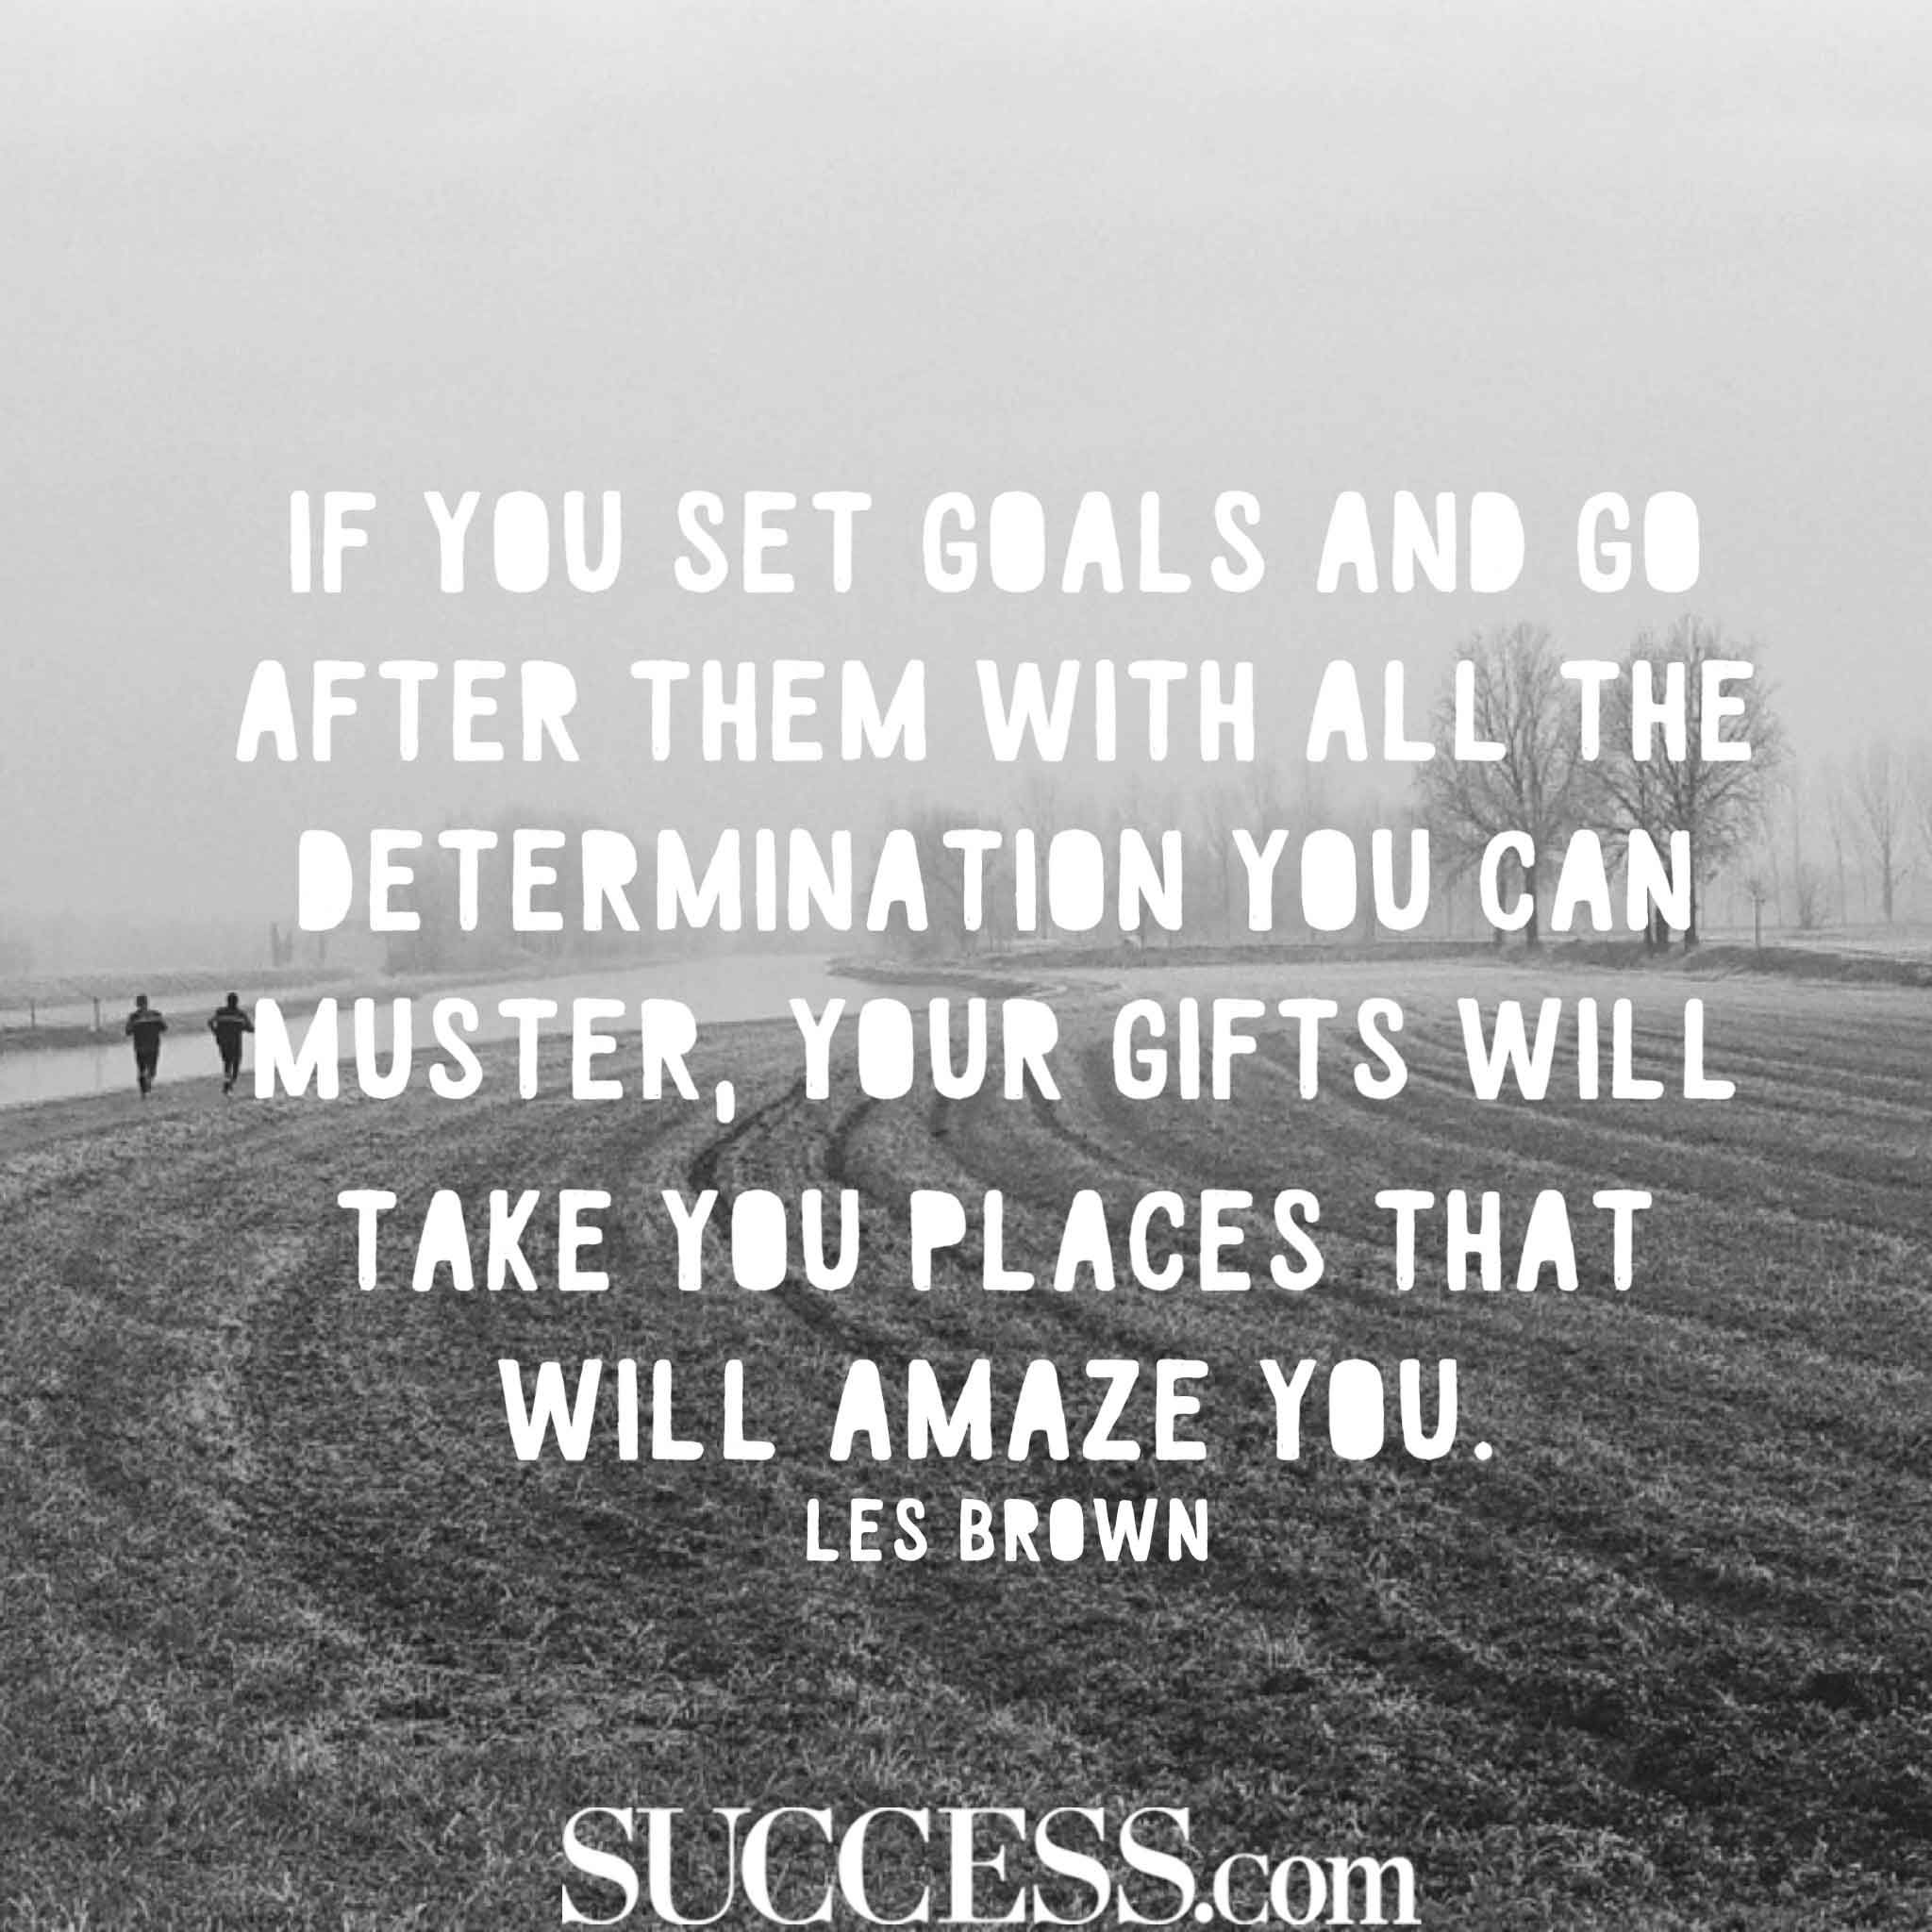 Quotes Working Hard Achieve Goals: 18 Motivational Quotes About Successful Goal Setting